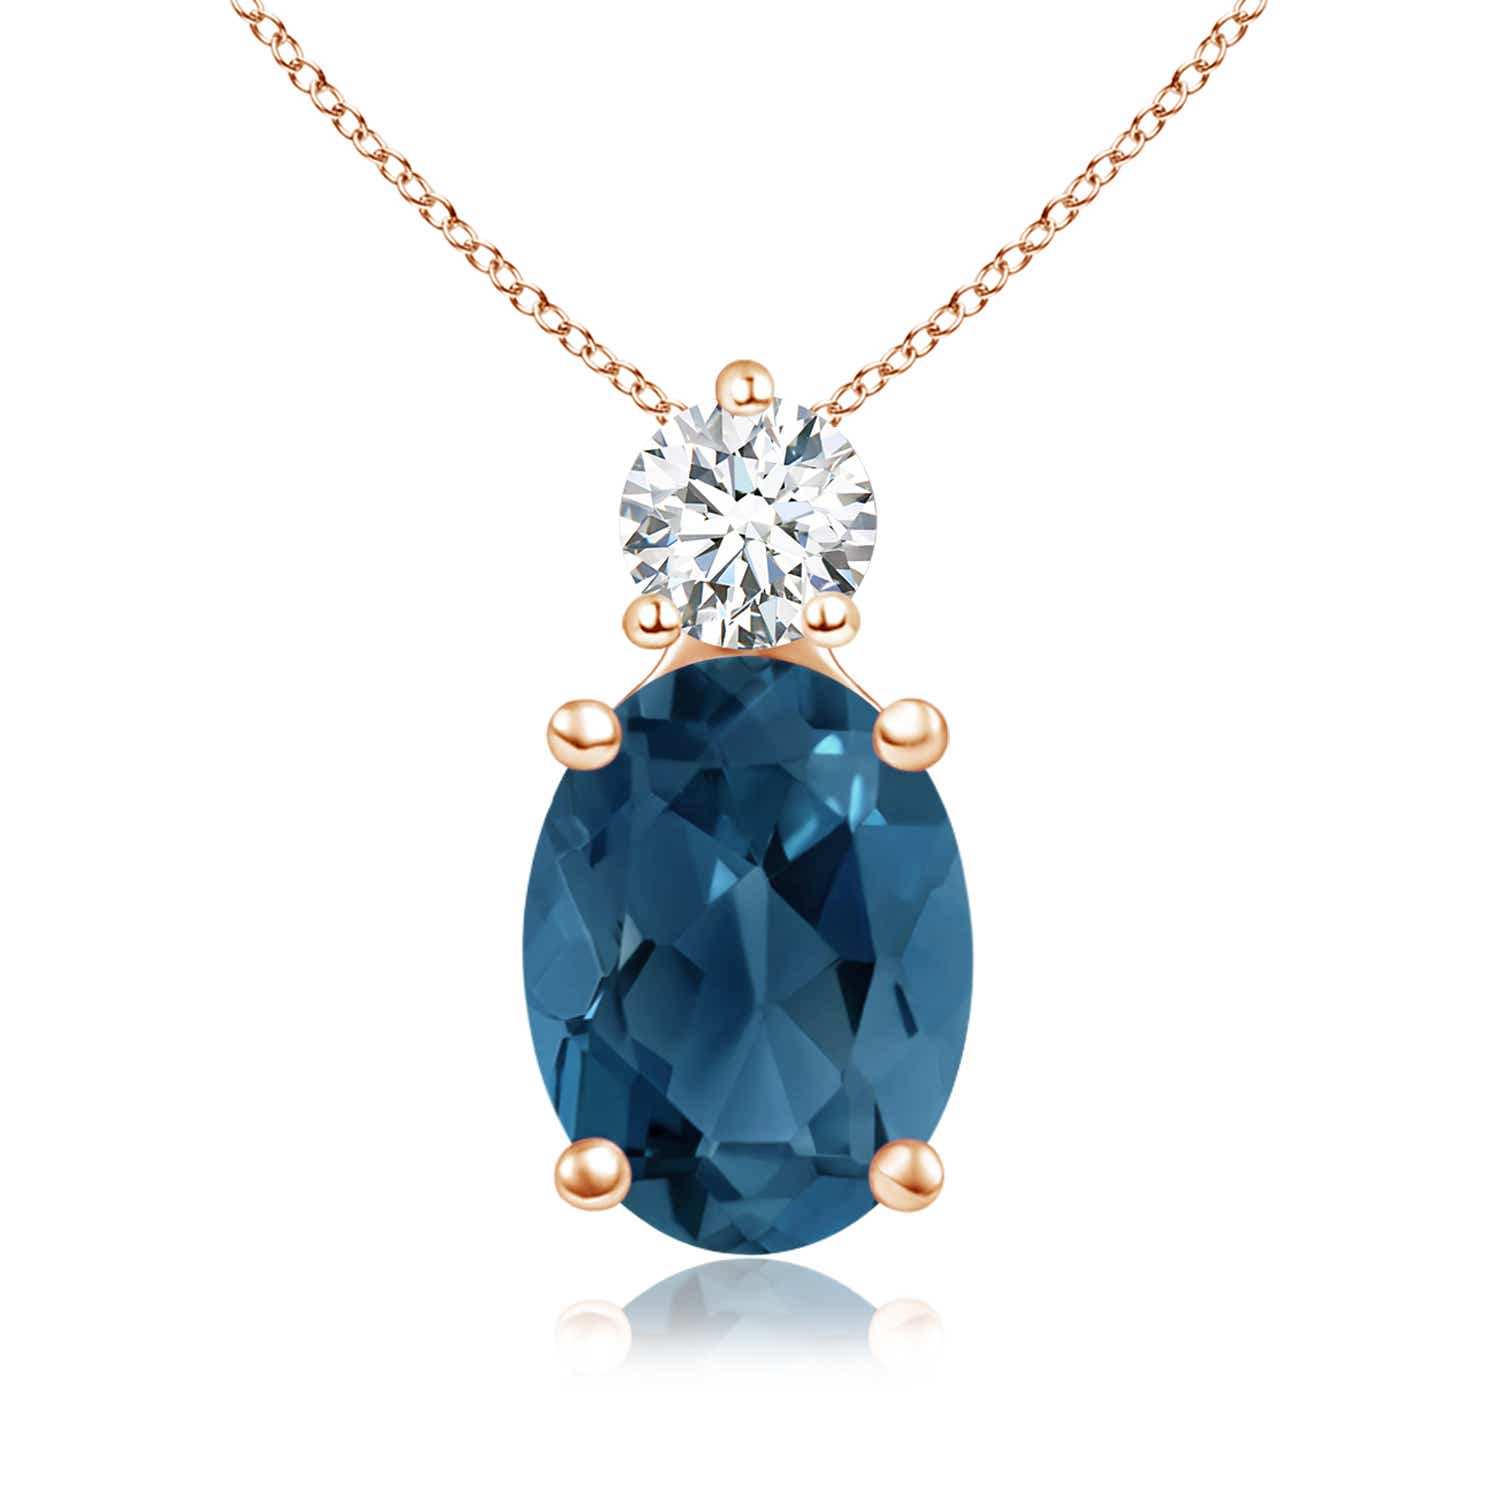 Angara Solitaire London Blue Topaz Necklace for Women in White Gold 6zVtUs5TO